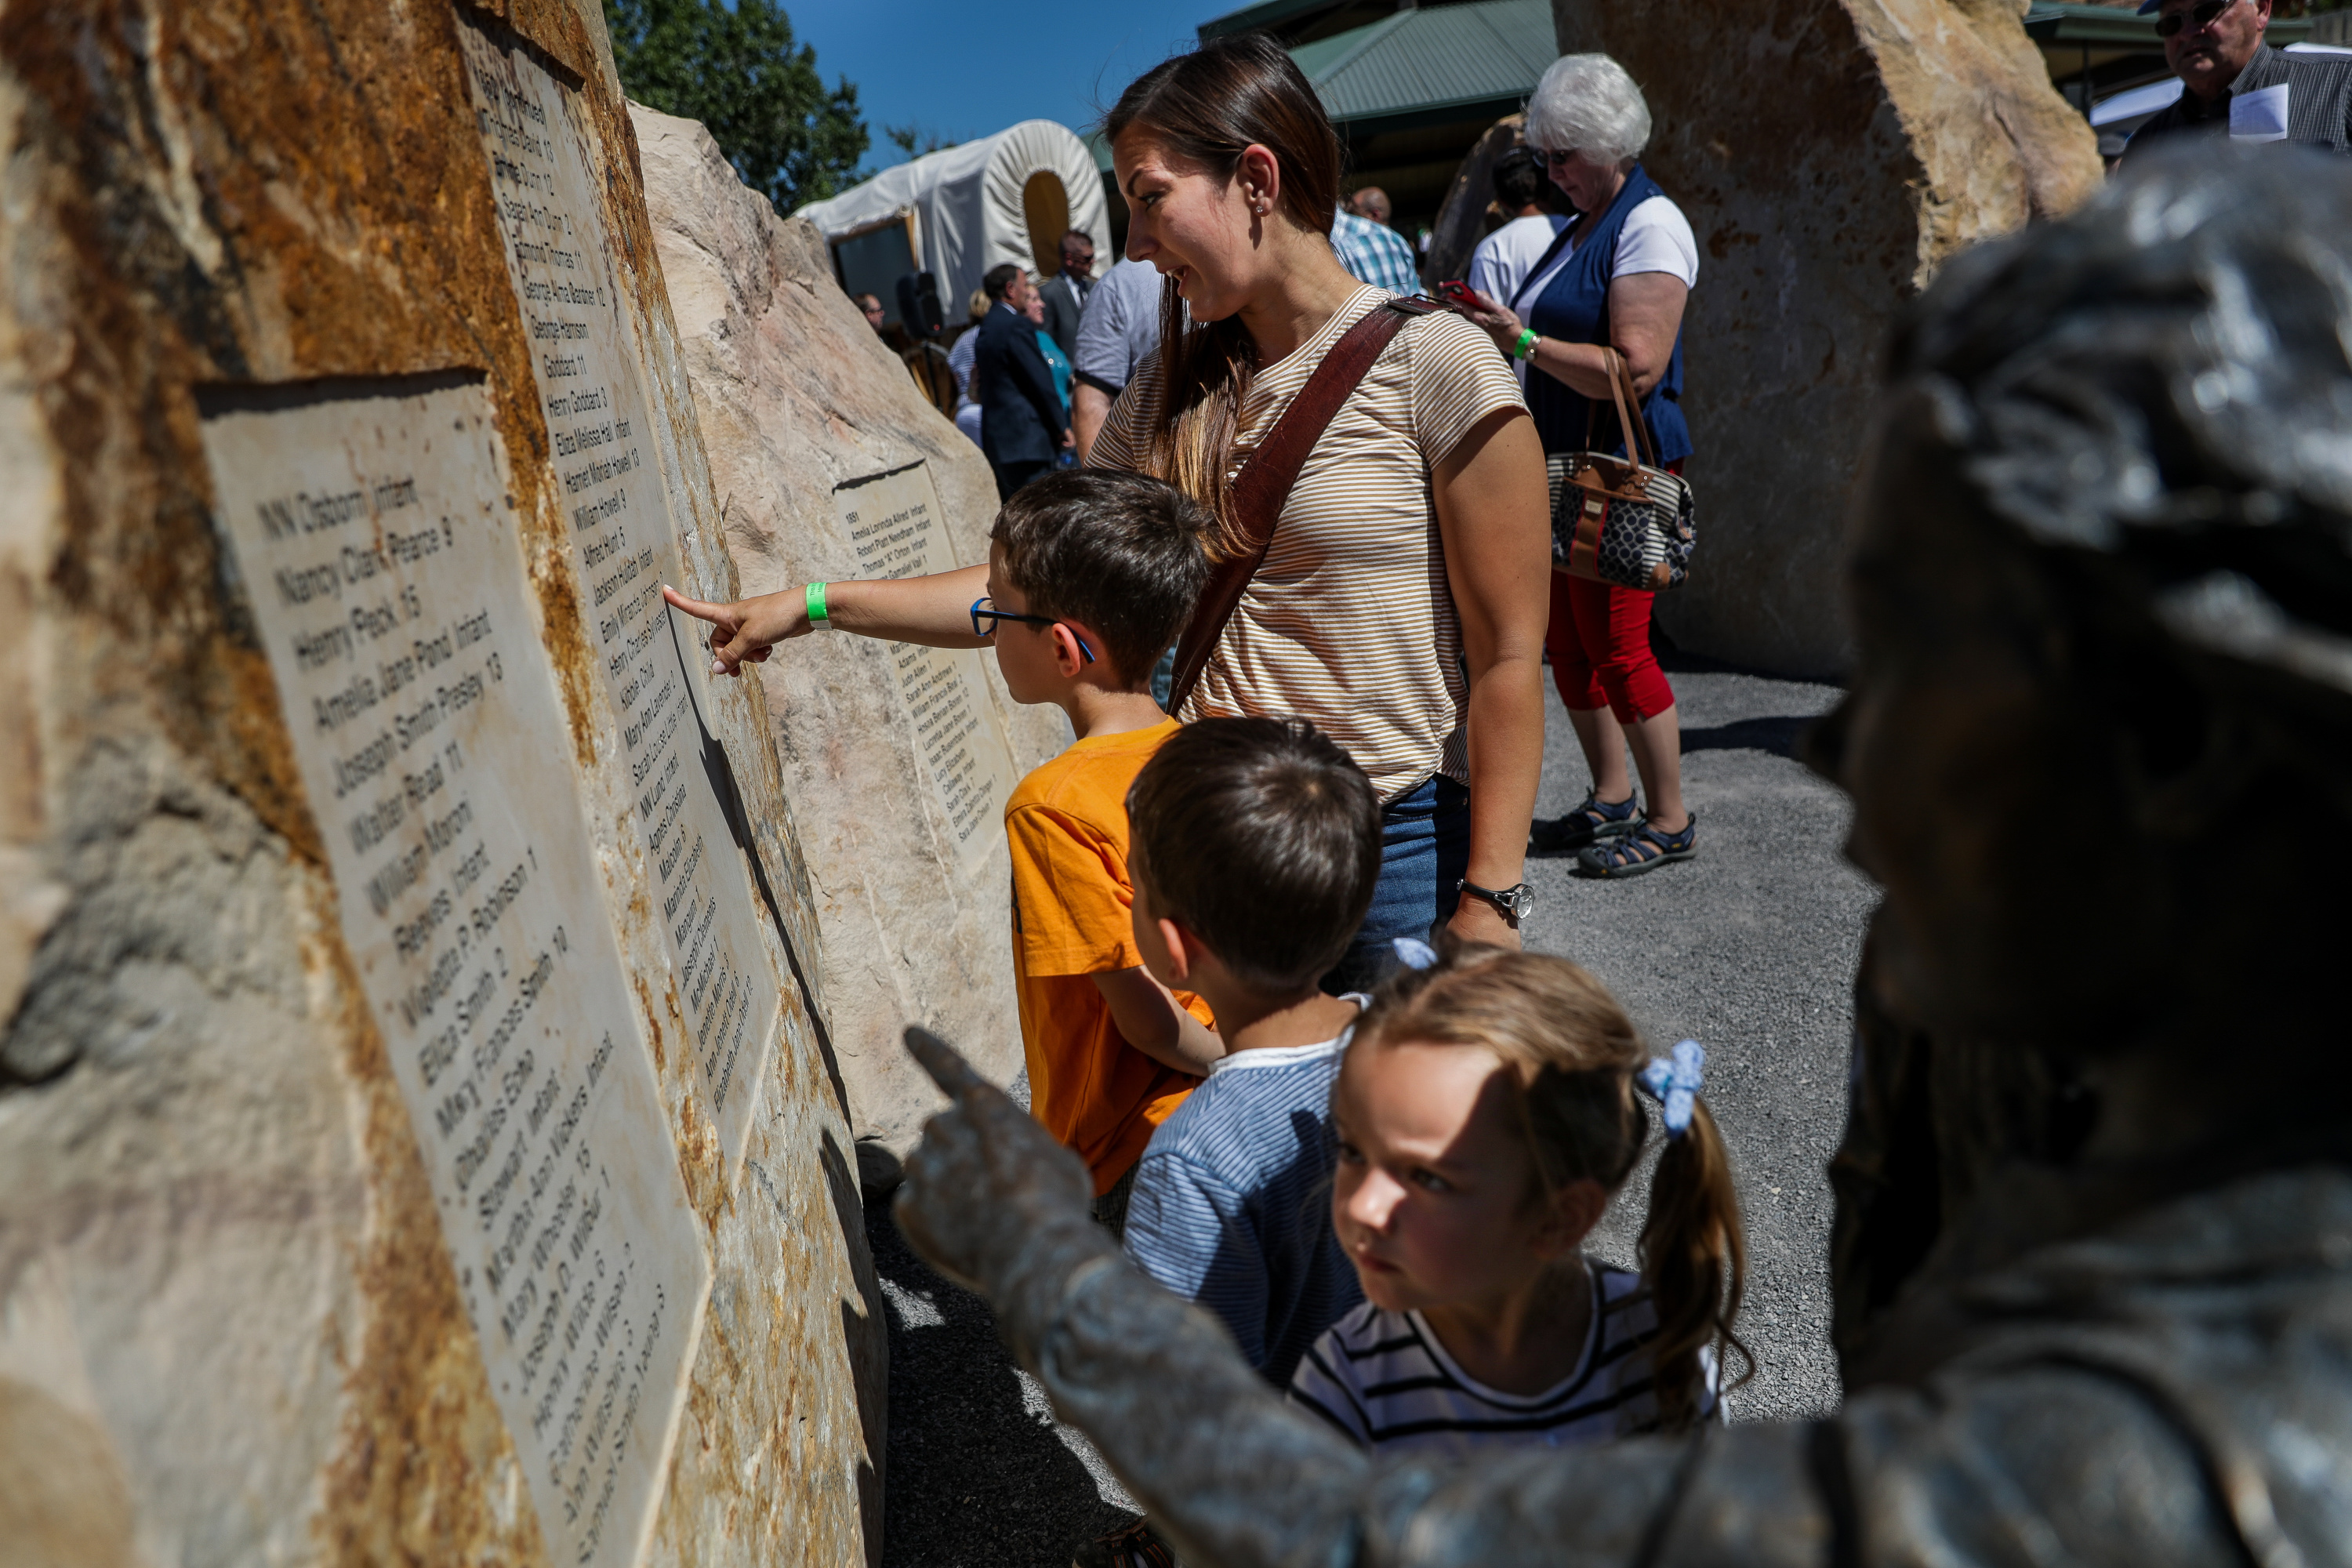 Elisabeth Farnsworth and her children — Sam, 7, Noah, 5, and Hannah, 3 — who are visiting from Gorlitz, Germany, tour the Children's Pioneer Memorial at This Is the Place Heritage Park in Salt Lake City after its dedication on Saturday, July 20, 2019.